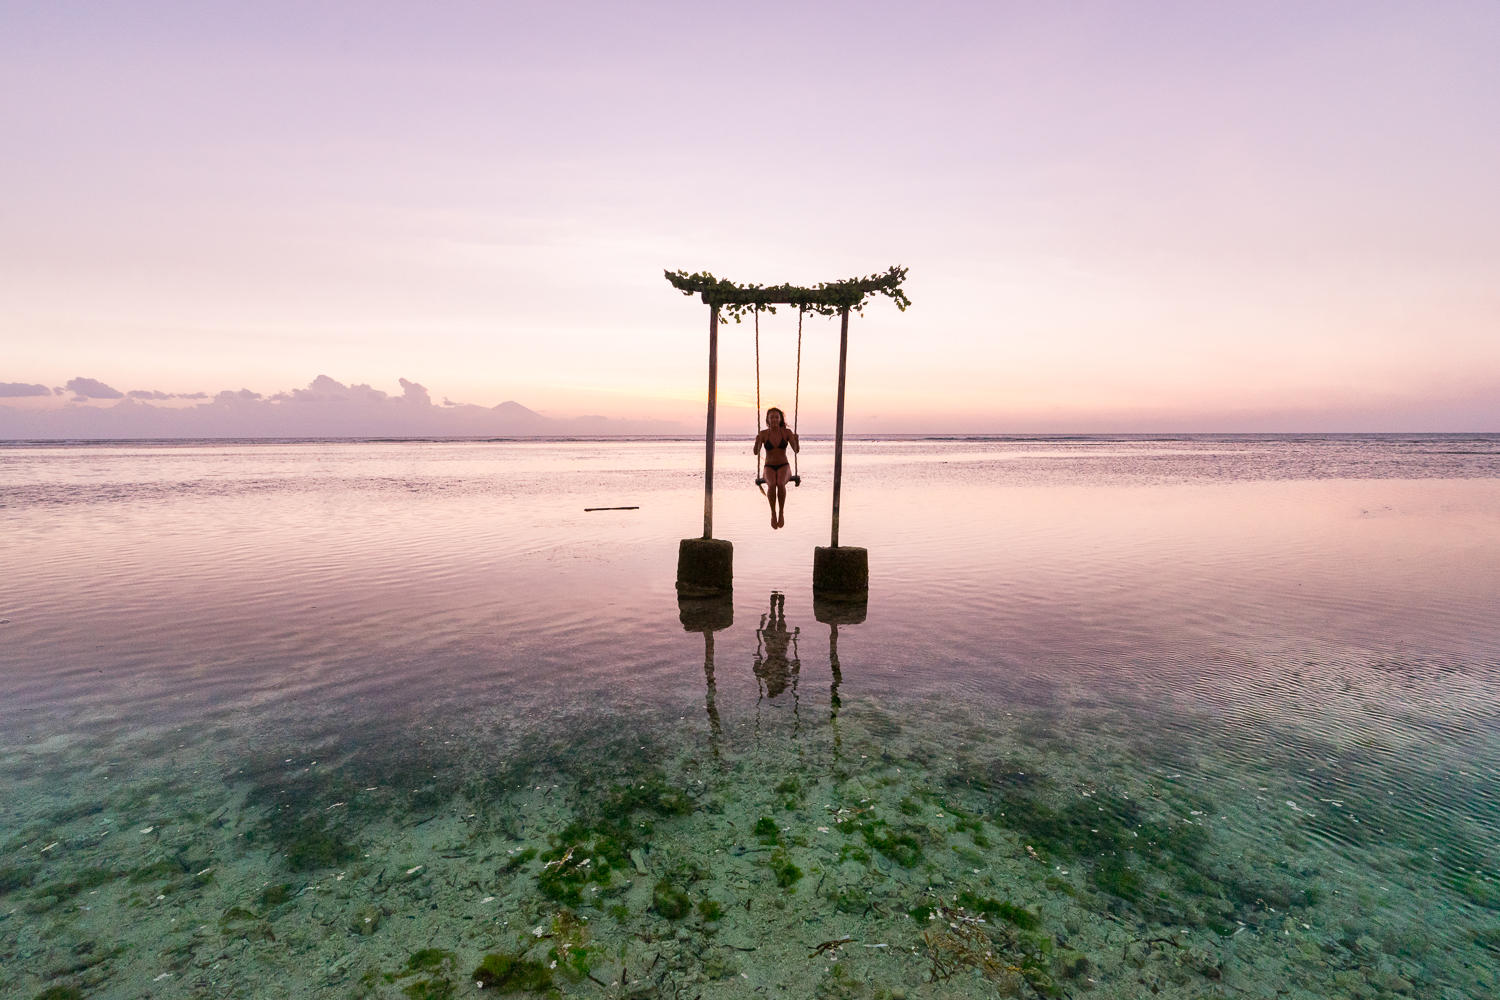 gili trawangan things to do, ocean swing gili t, gili trawangan ocean swings, gili trawangan ocean swing, gili t swing, gili trawangan swing, gili t swing location, gili trawangan swing location